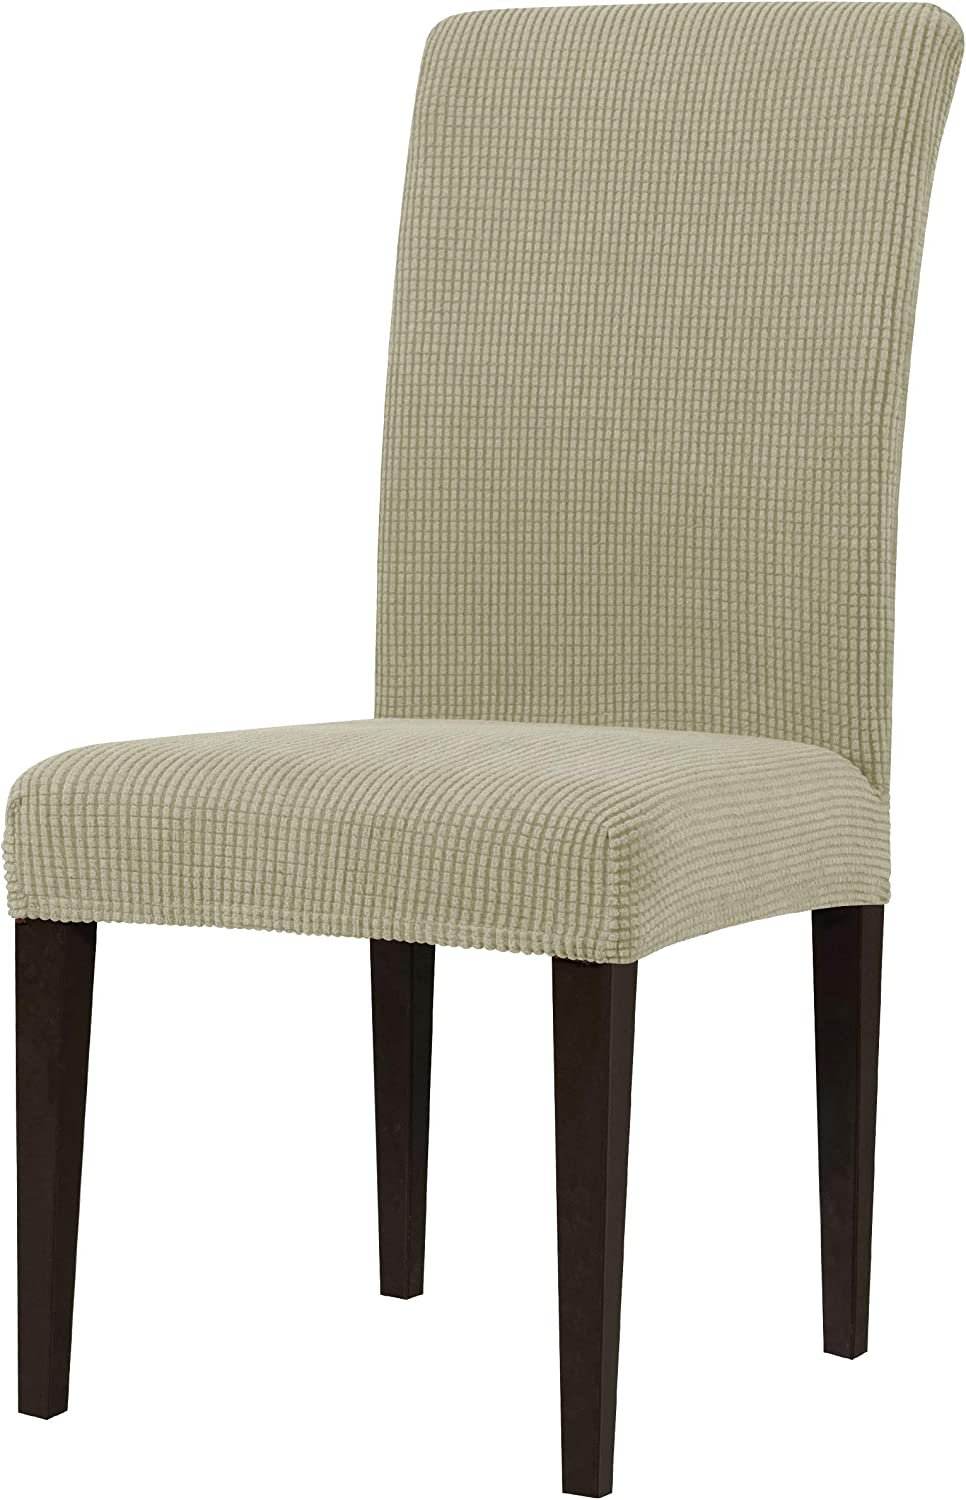 Machine Washable Anti-Slip Parson Chair Protector for Party Set of 2, Coffee subrtex Stretch Dining Chair Covers Elastic High Back Dining Room Chair Cover